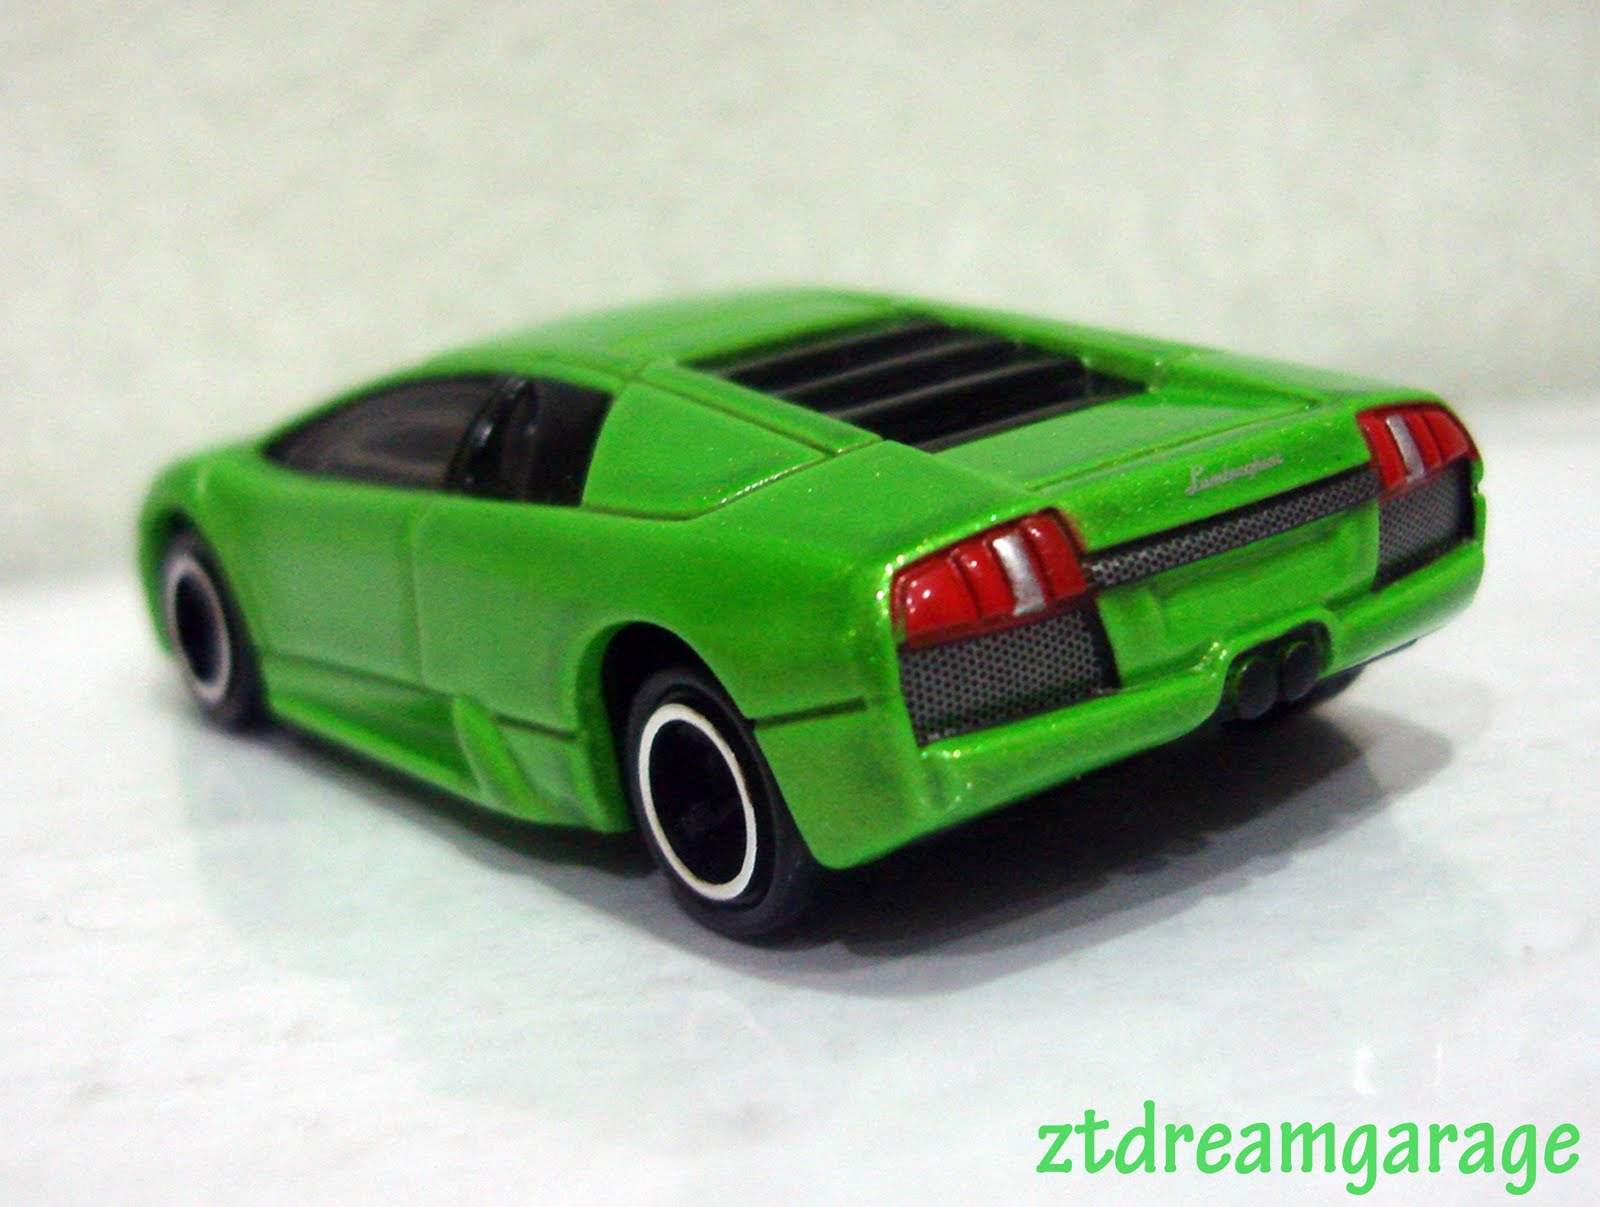 Zt S Dream Garage Tomica Lamborghini Murcielago Green